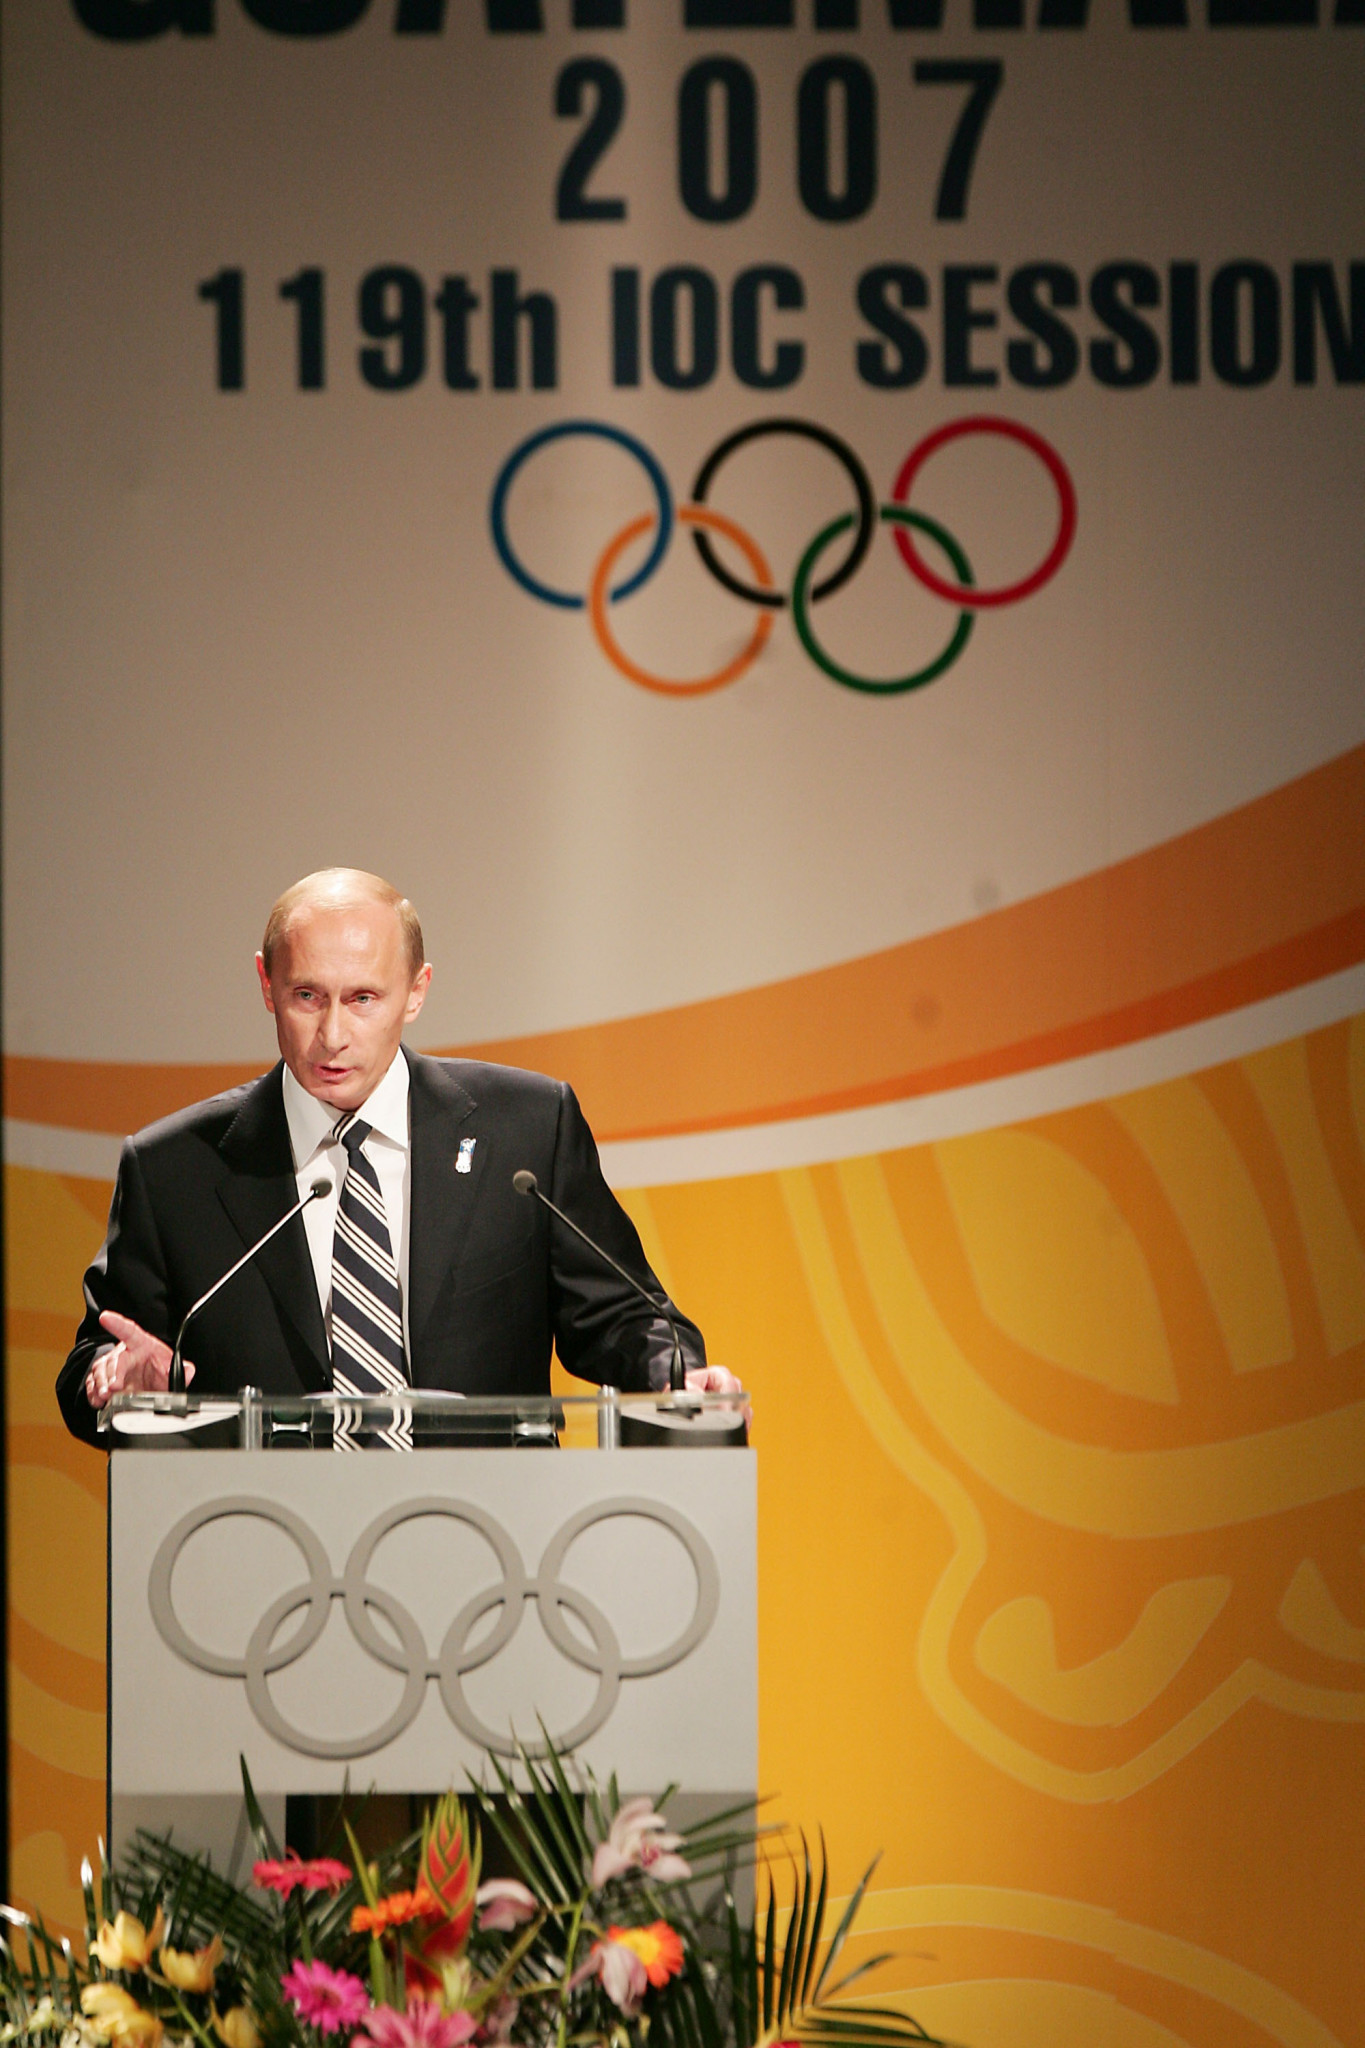 Vladimir Putin's speech to the IOC at its Session in Guatemala in 2007 proved decisive in Sochi being awarded the 2014 Olympic and Paralympic Games - marking the start of Russia's